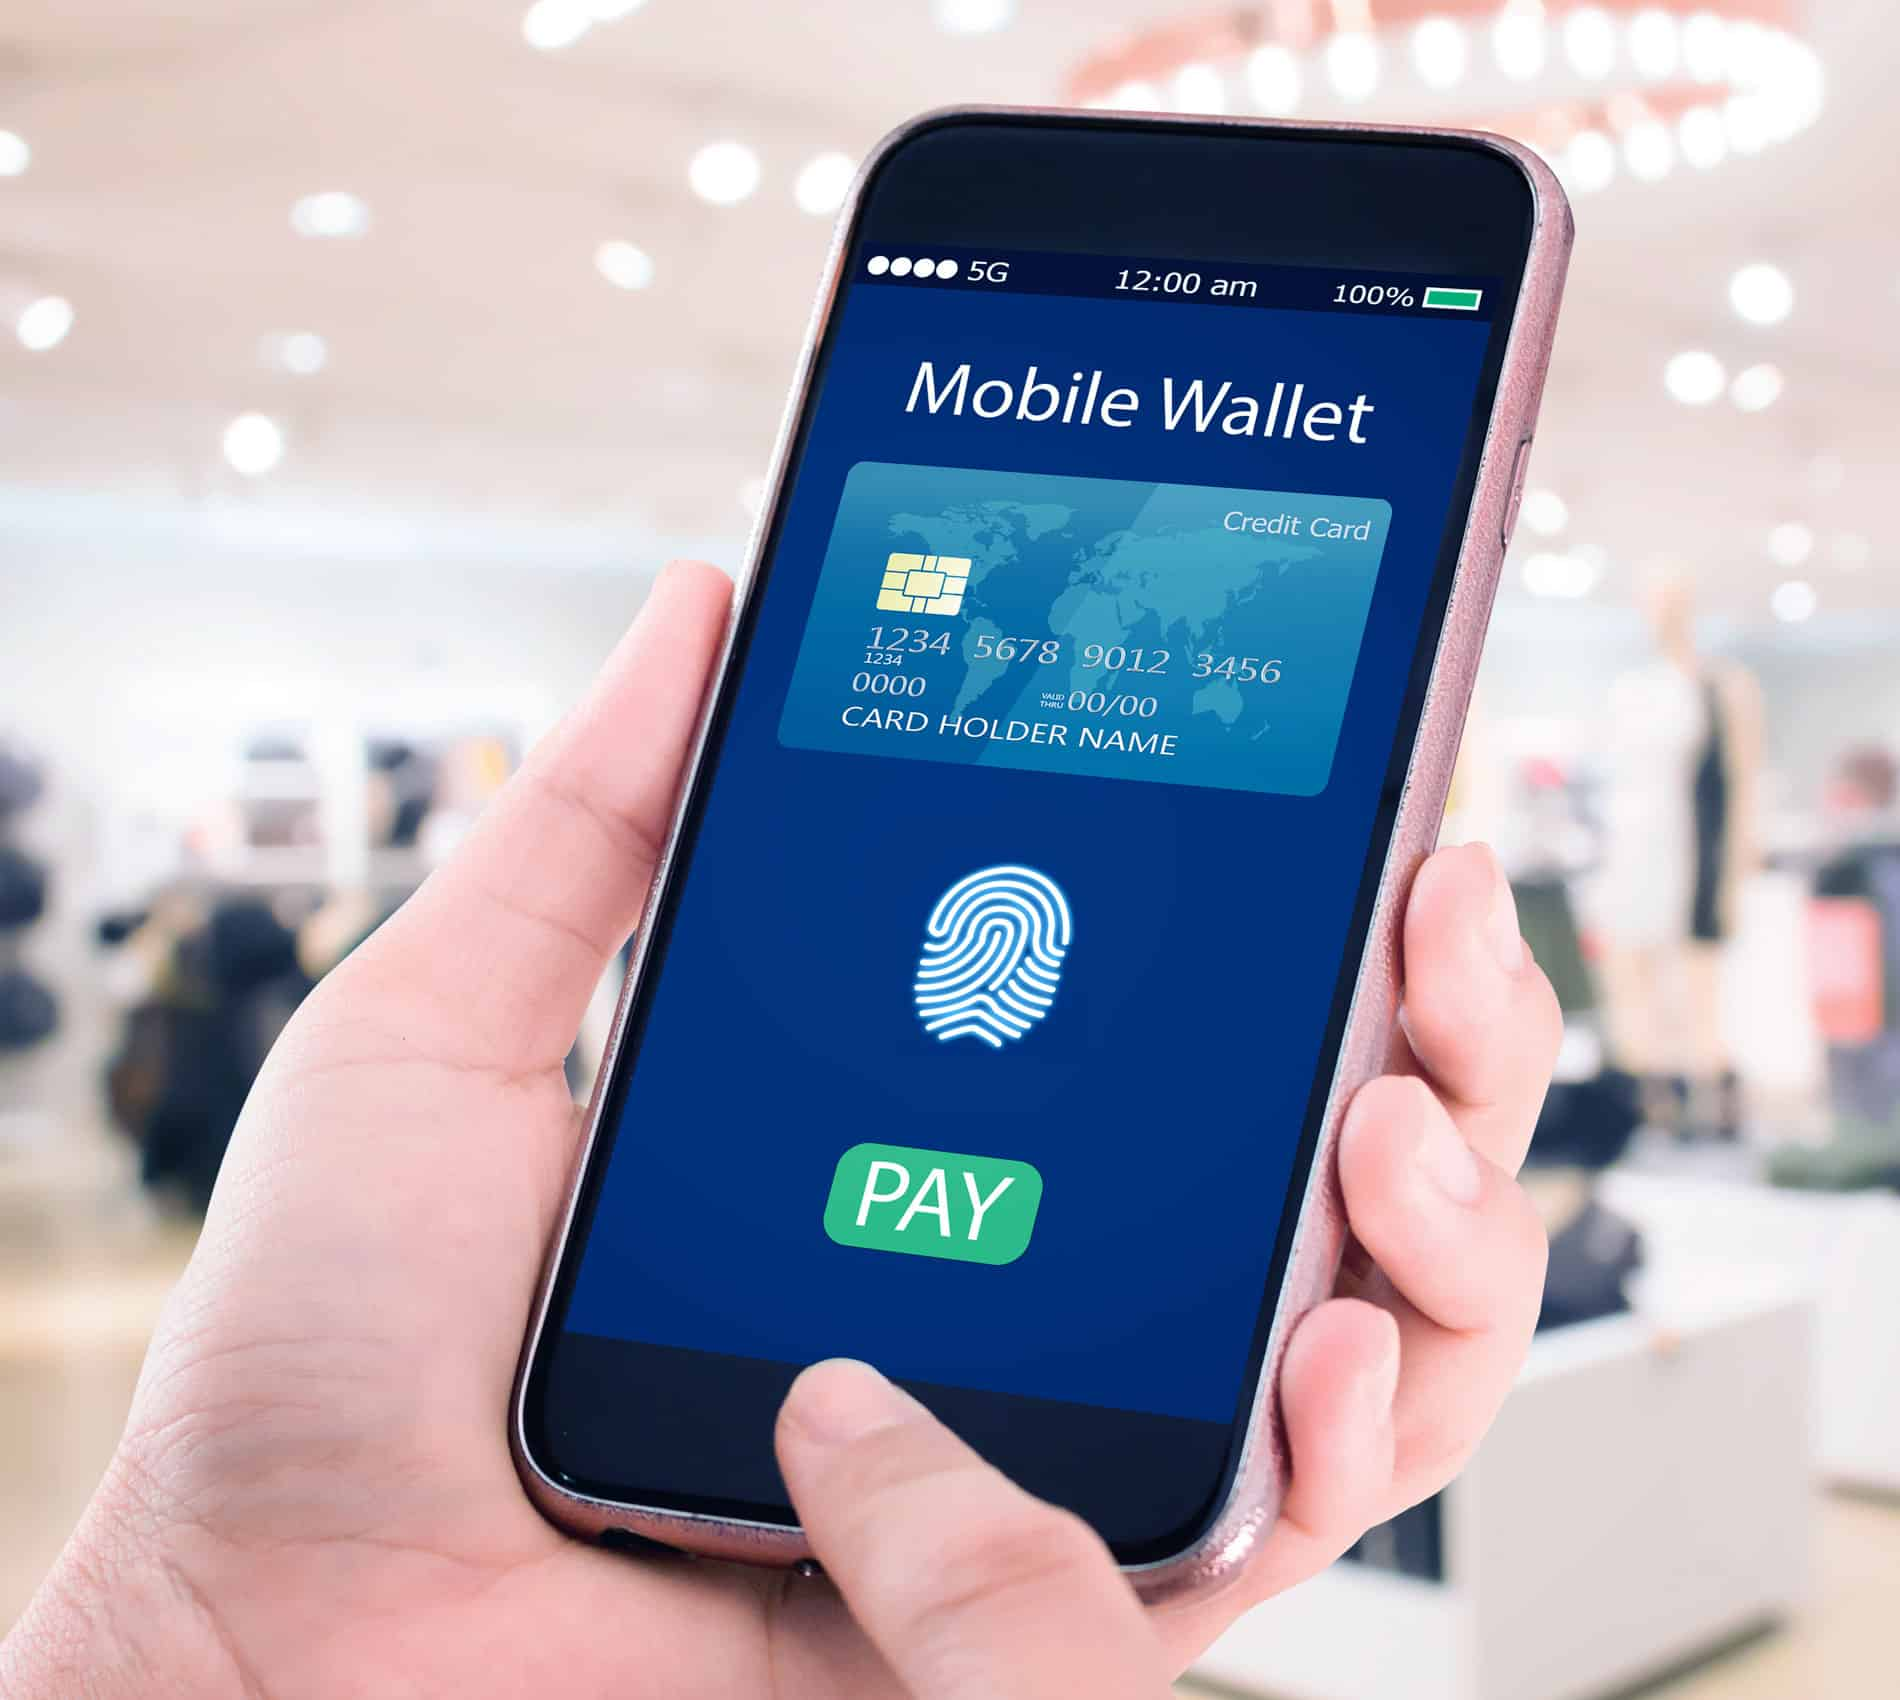 Pandemic reshaped, accelerated shift to digital wallets